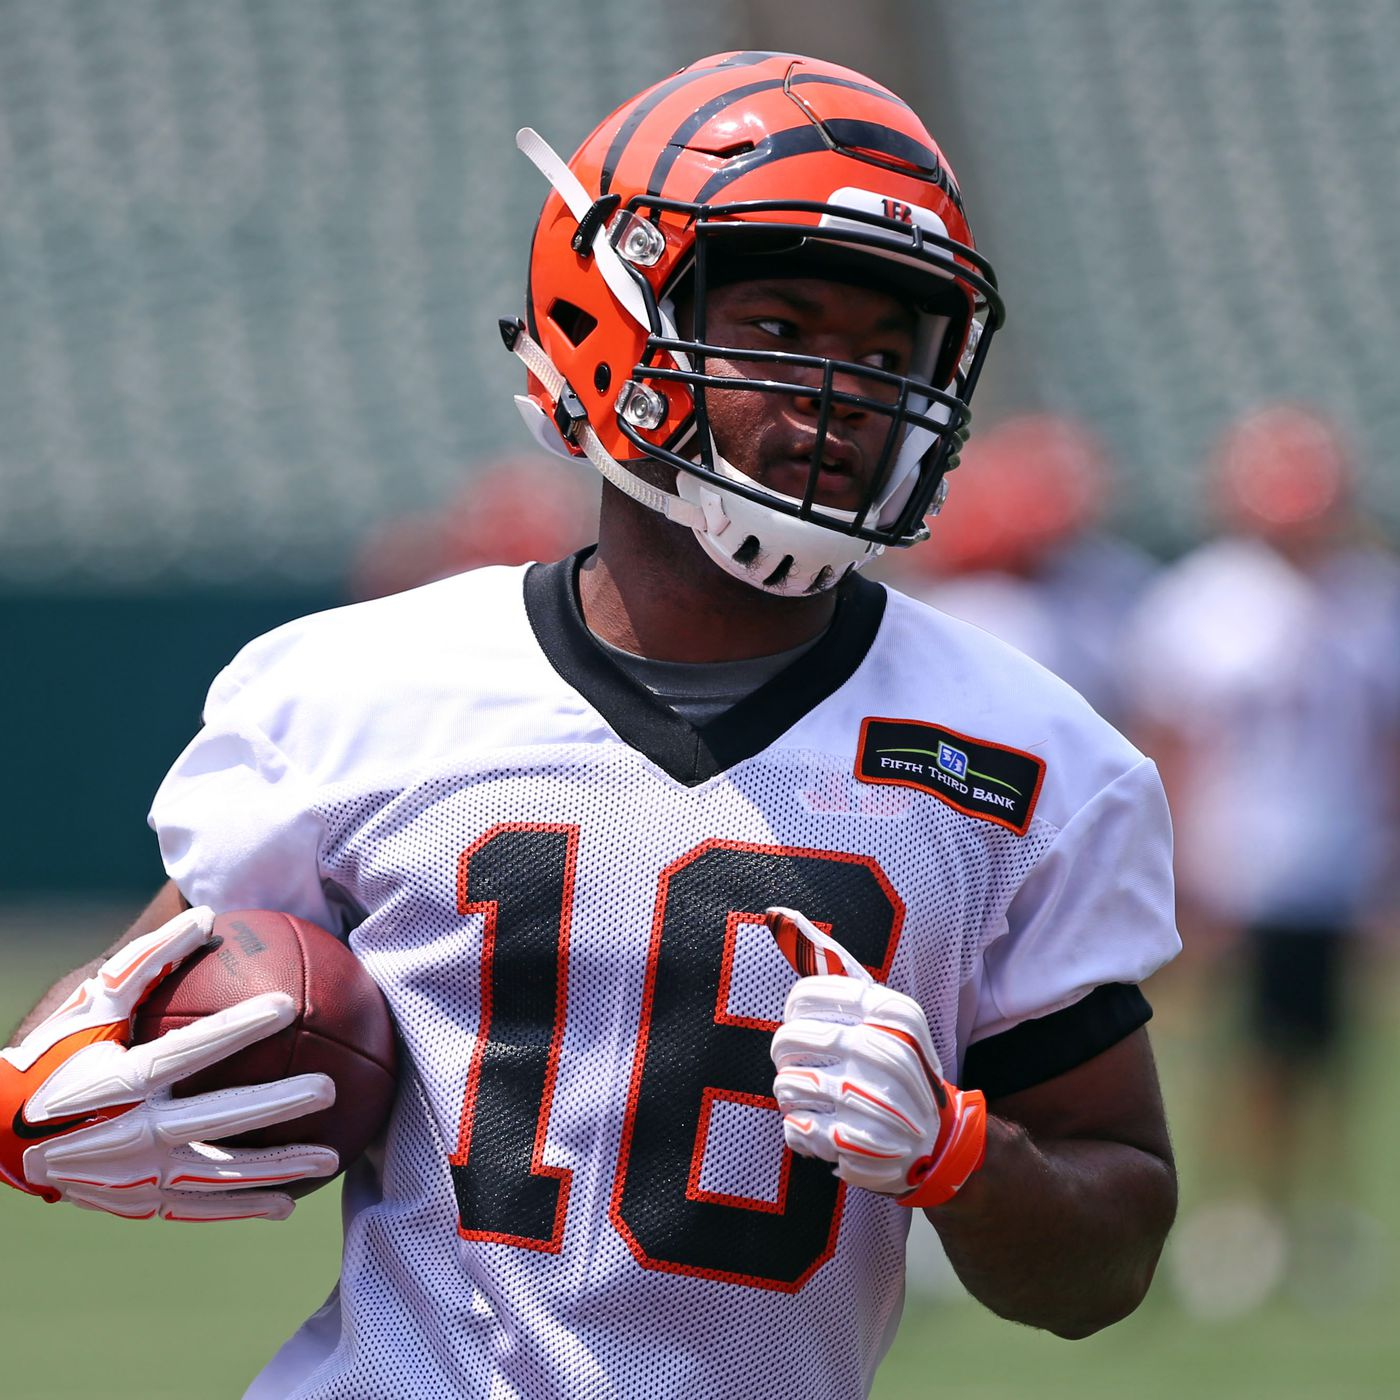 Cody Core leaves Bengals practice with hand injury - Cincy Jungle